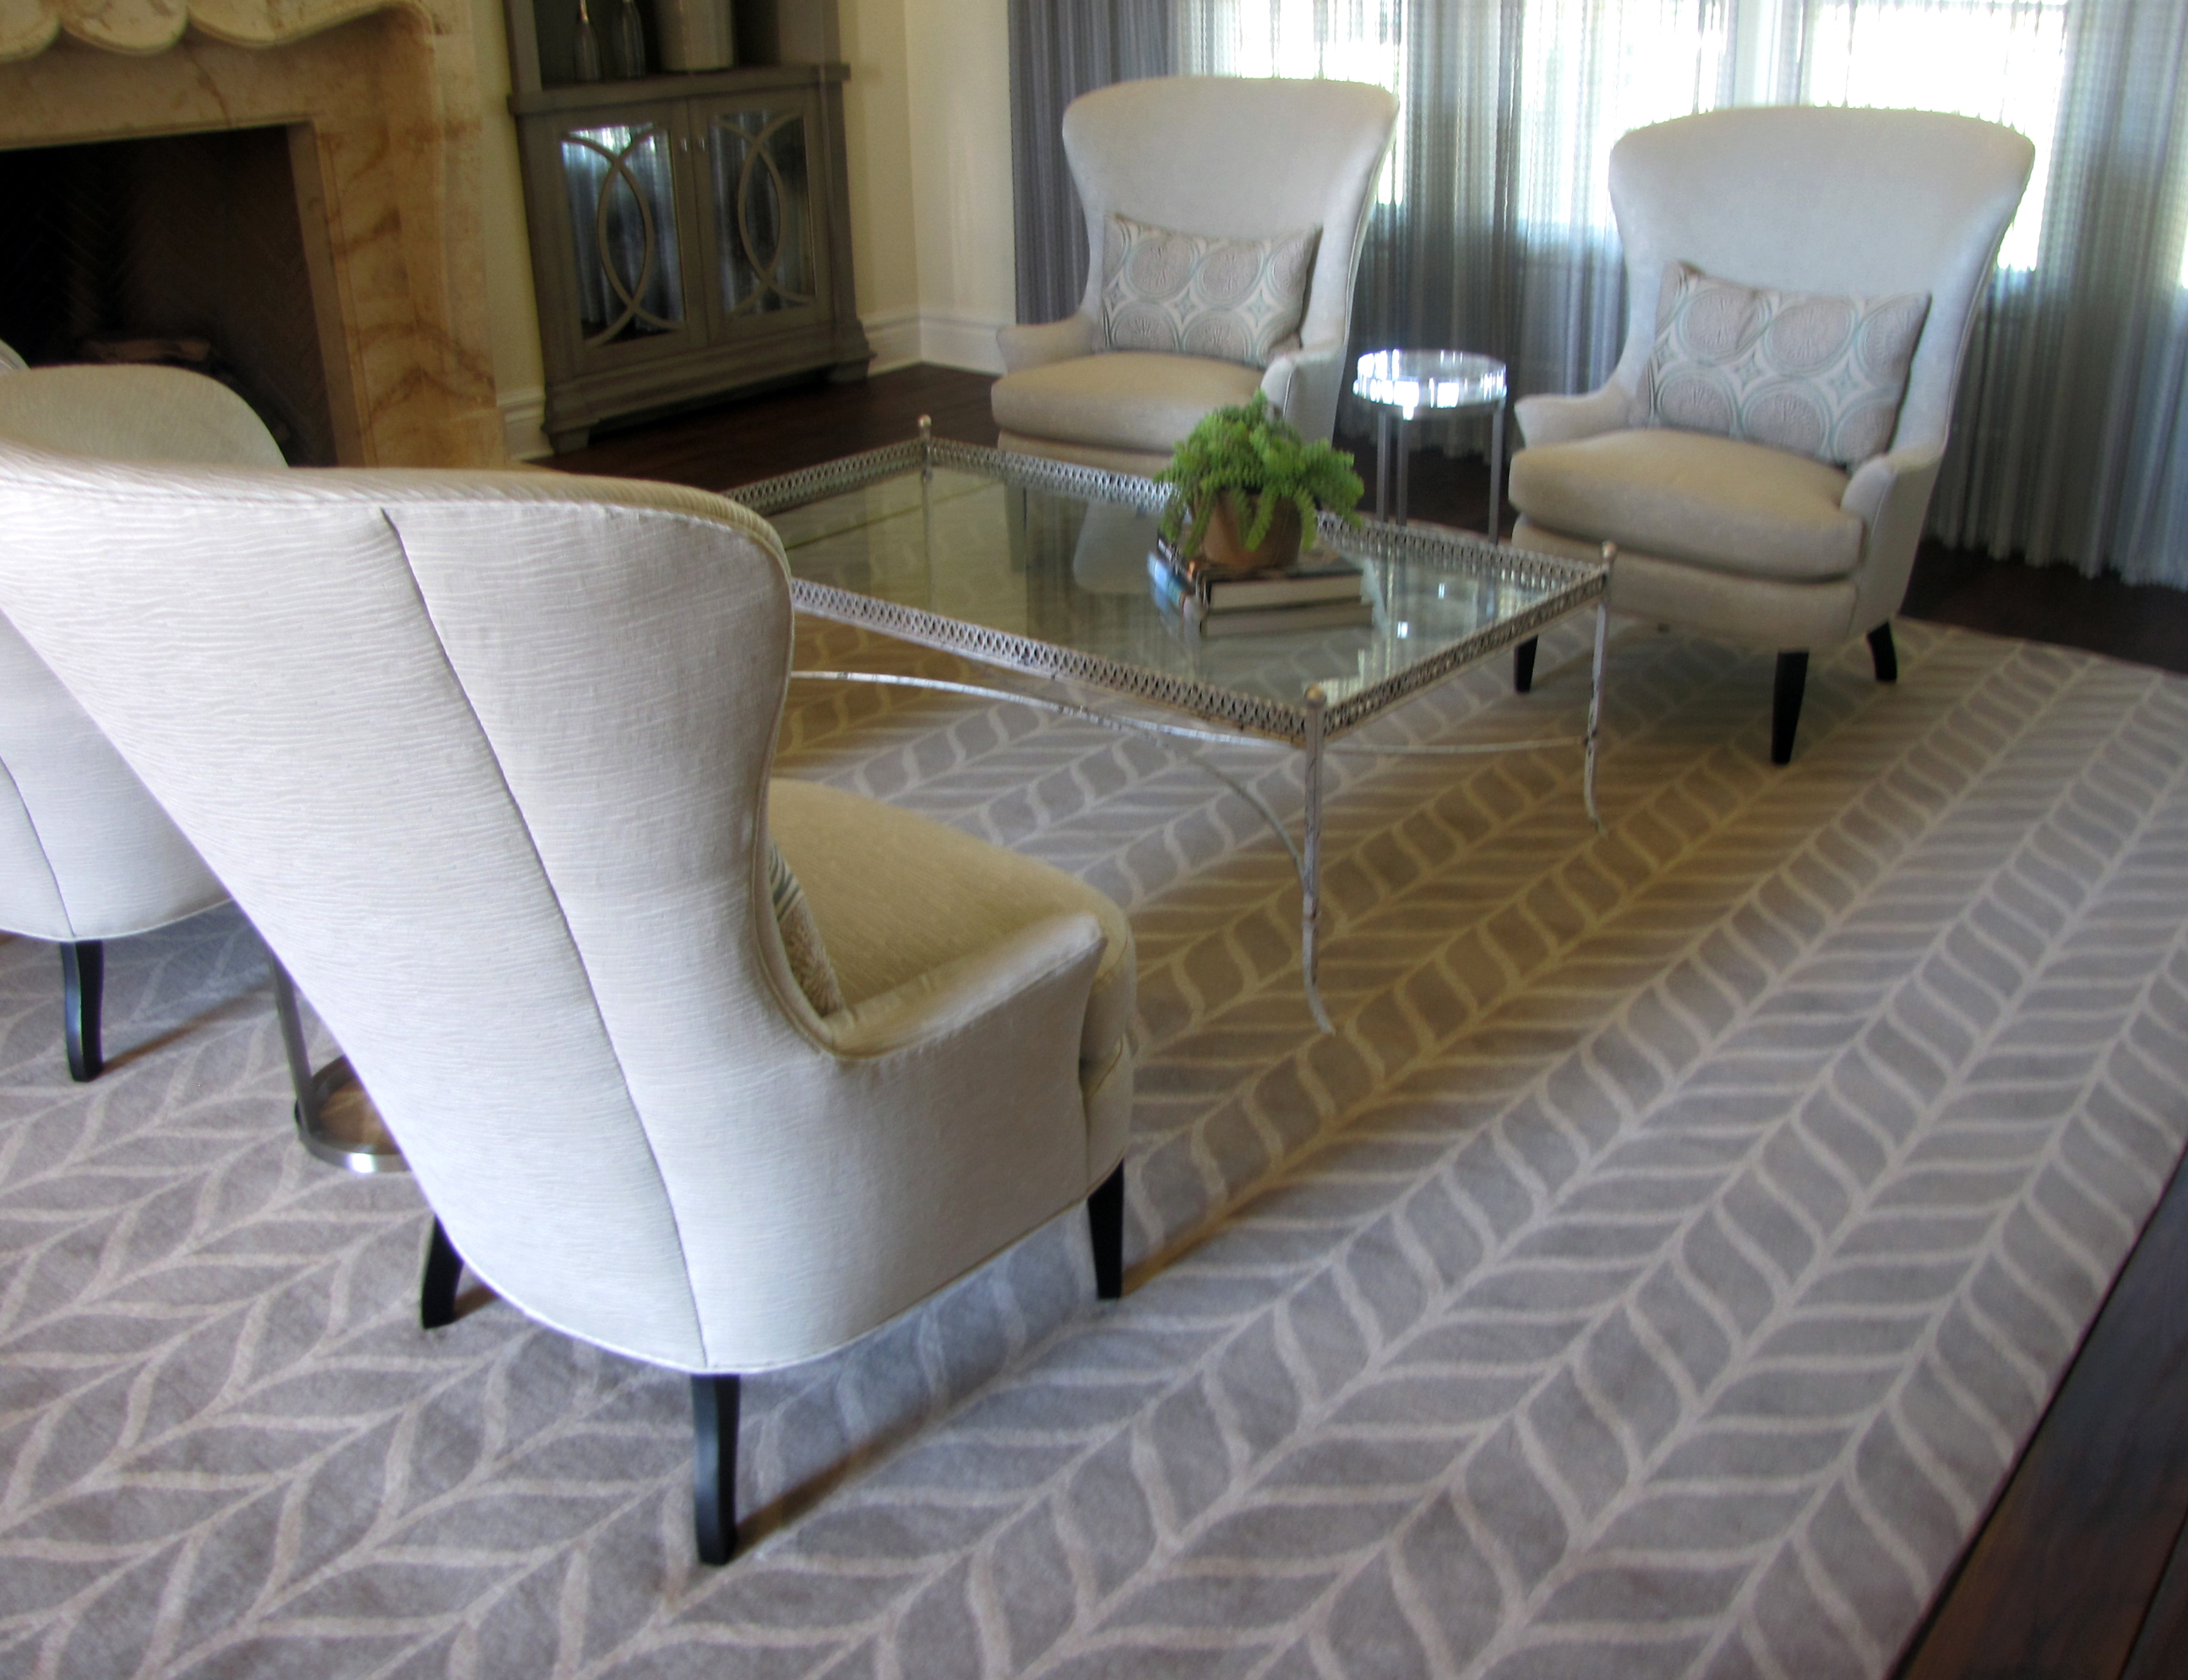 custom rugs demonstrated: client designs own rug ZIEUVNA